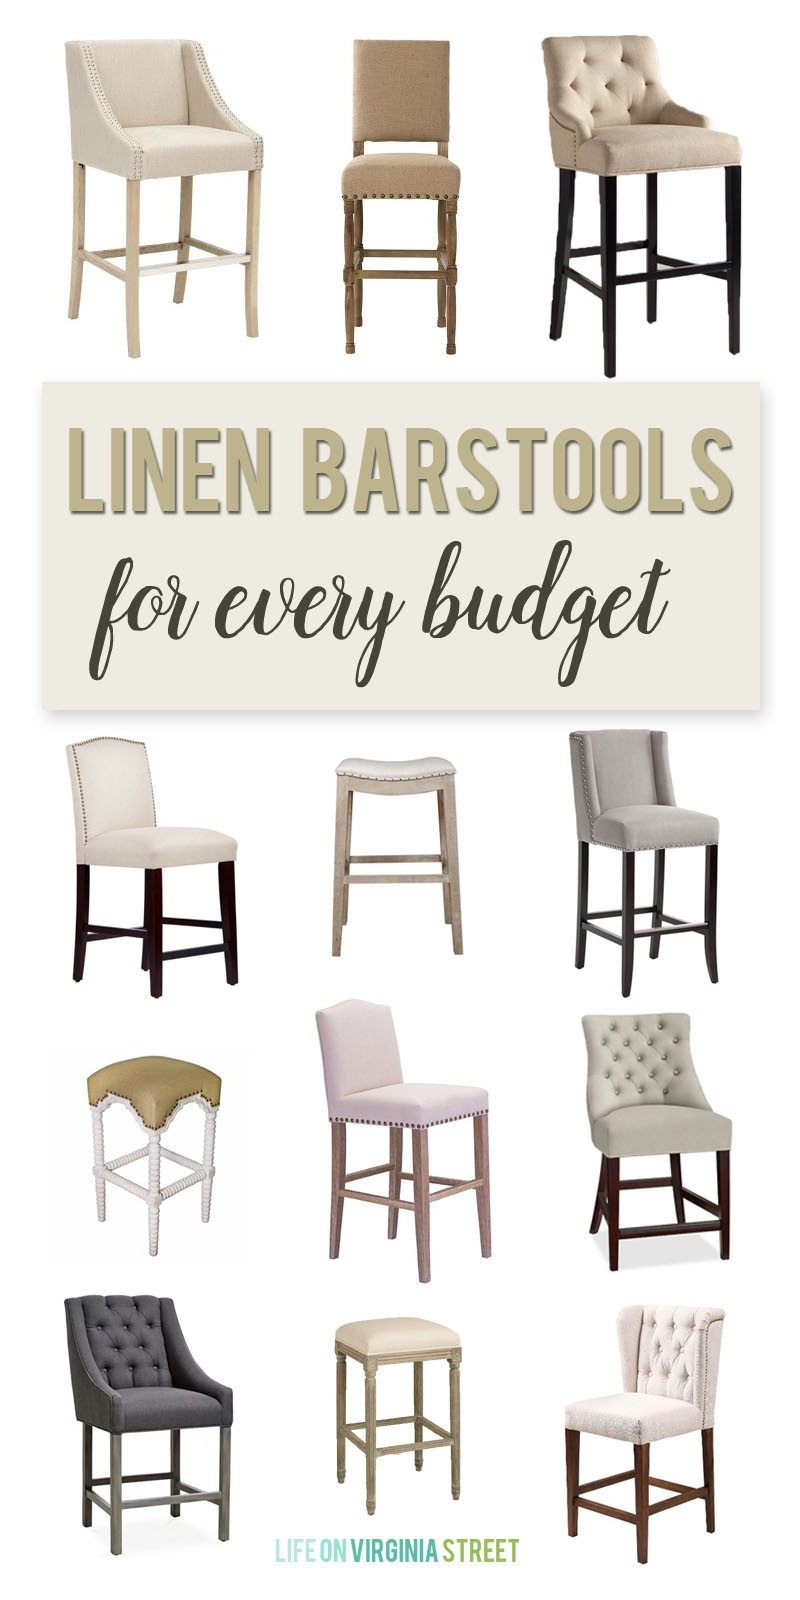 Linen Barstools For Every Budget Life On Virginia Street